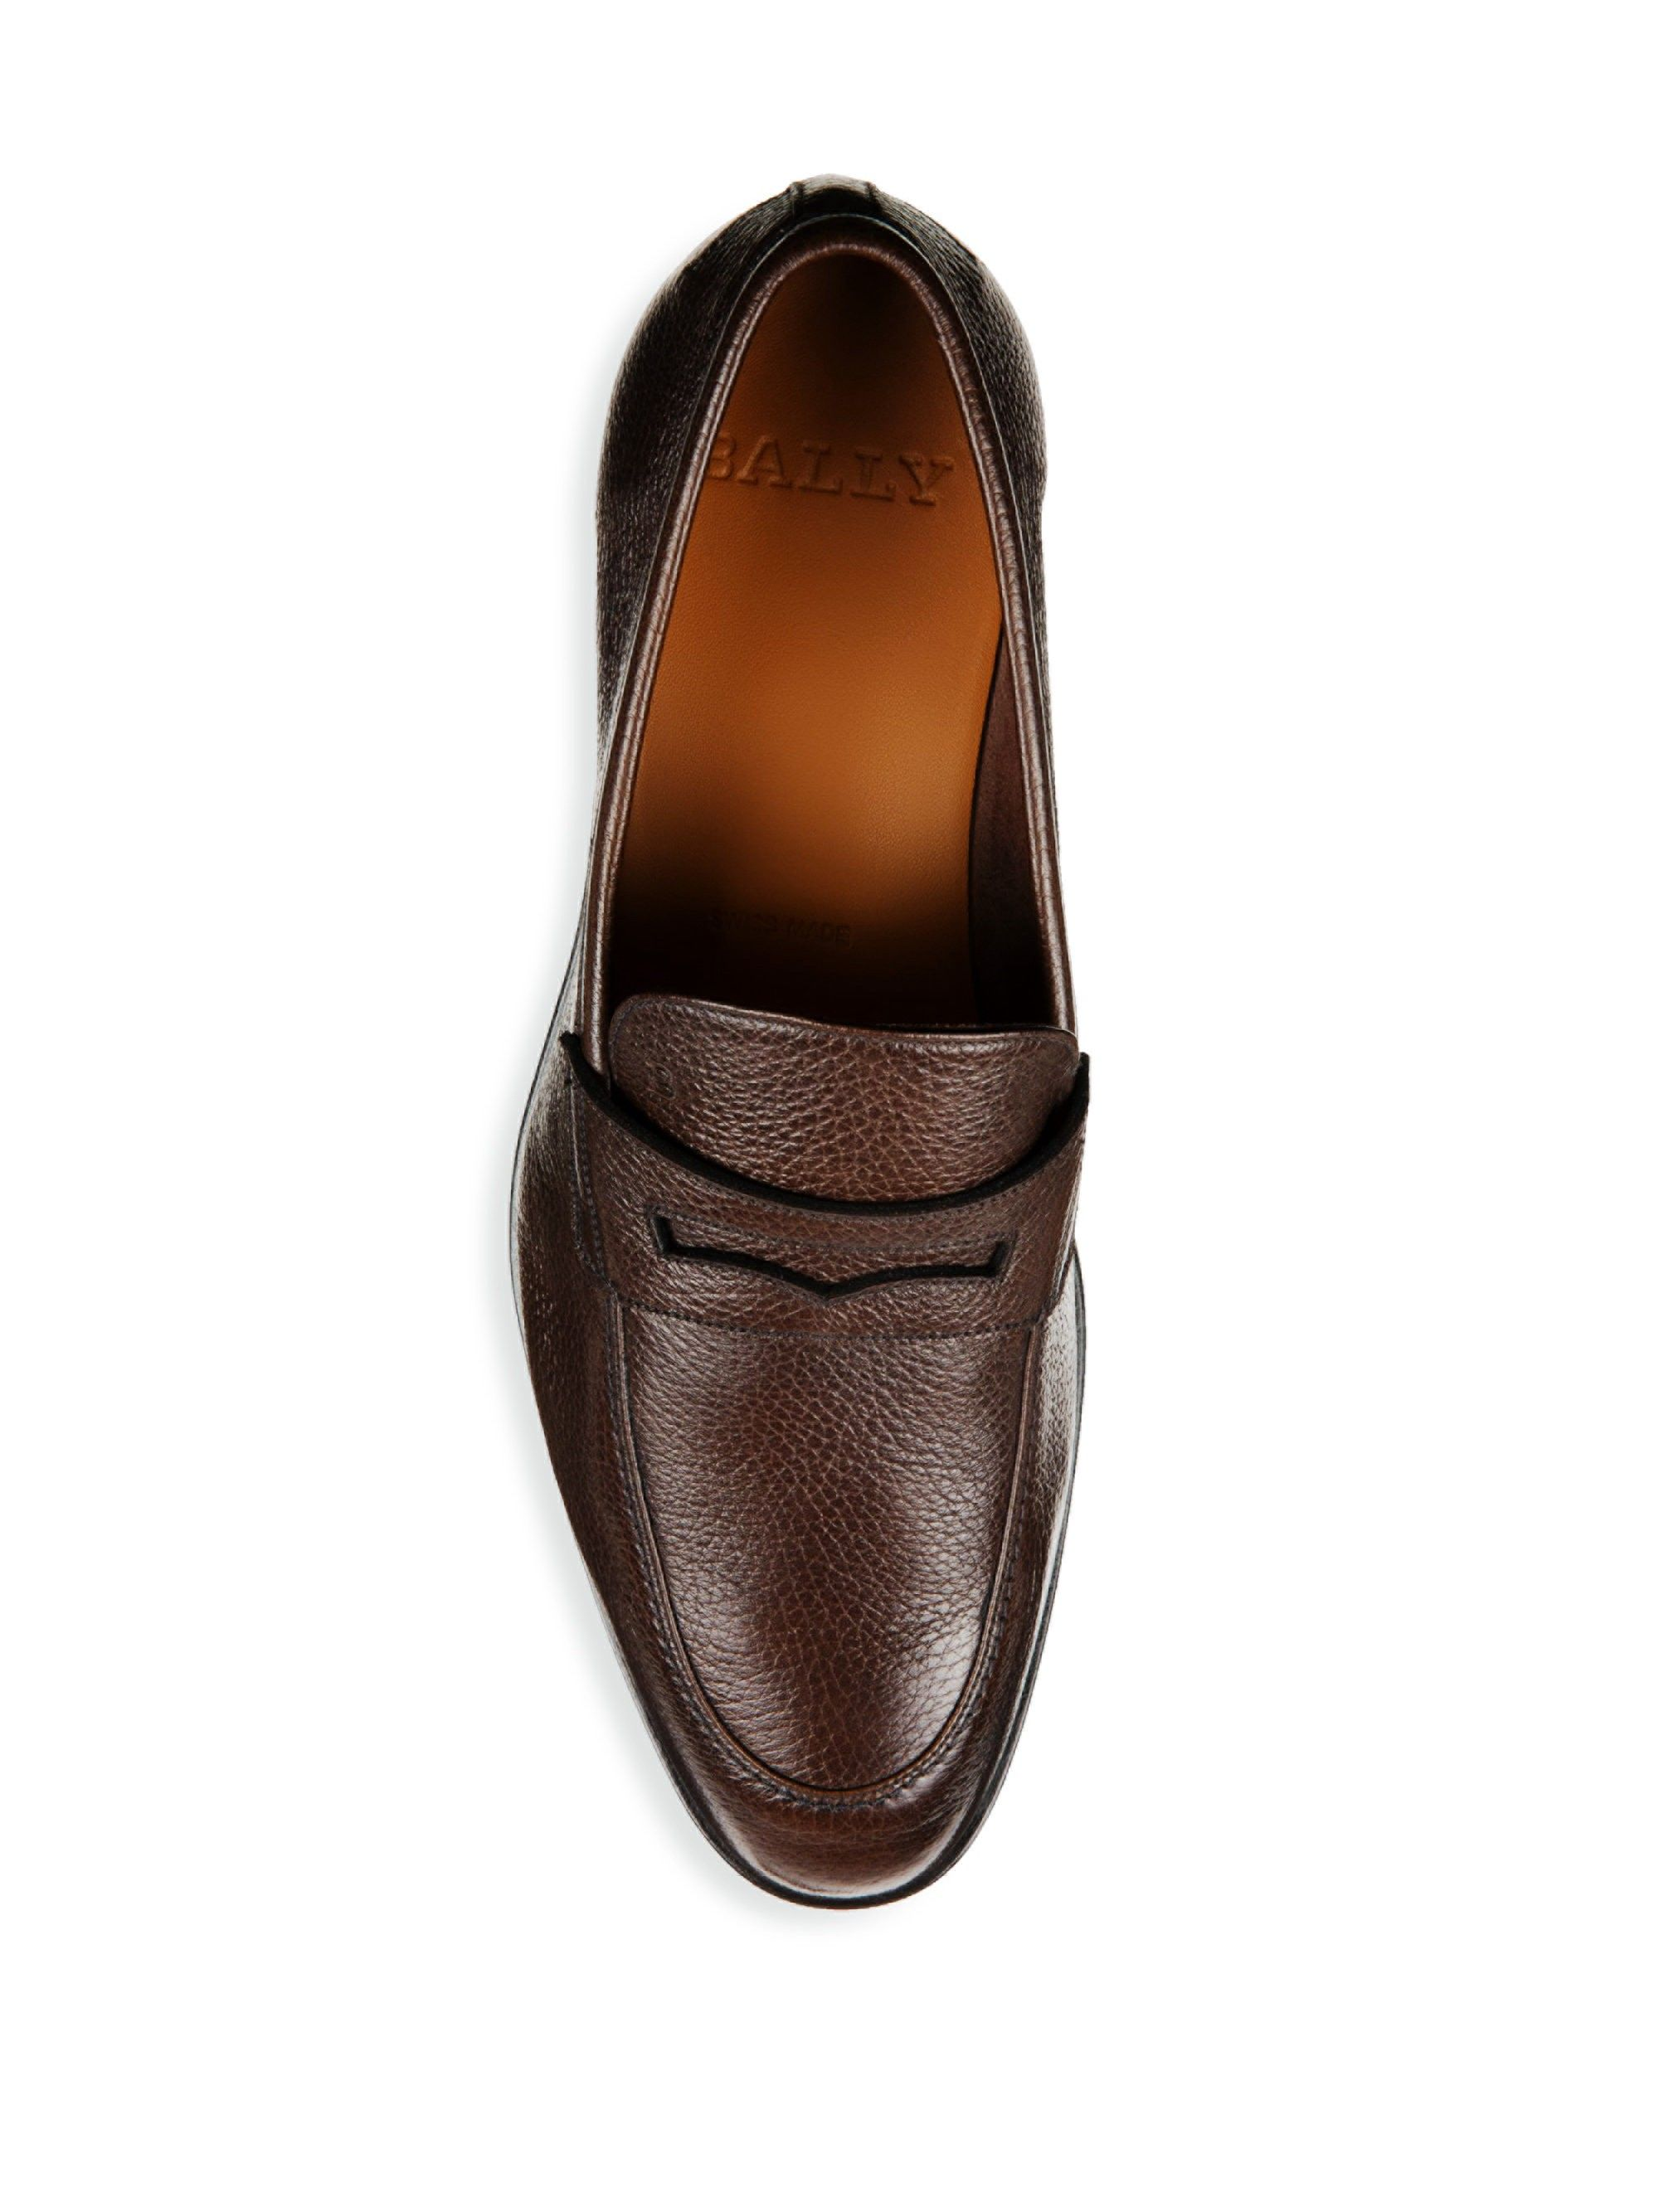 b7cd81897cb Bally Webb Grained Leather Penny Loafers - Brown 10.5 D